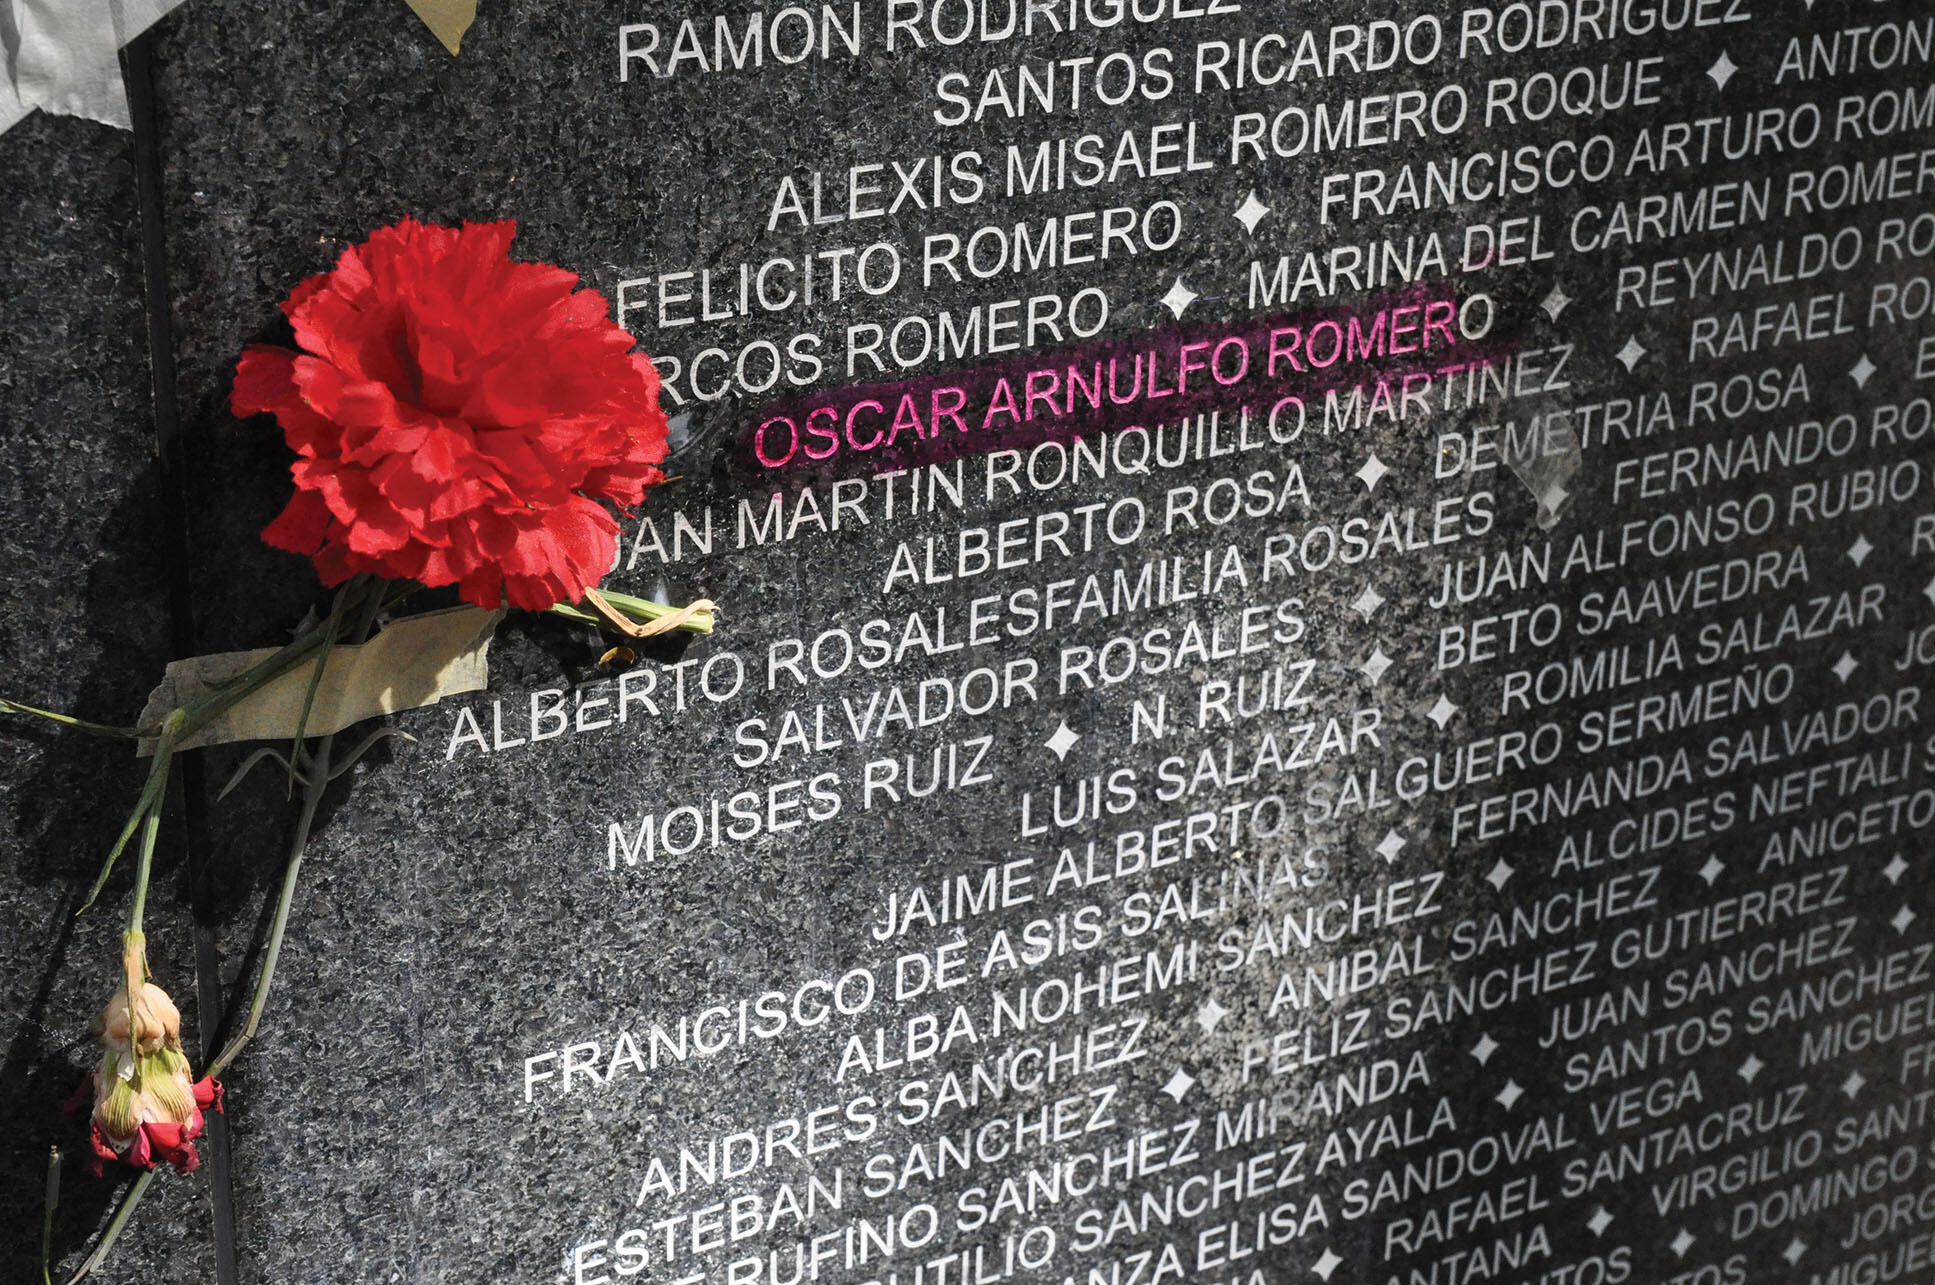 Archbishop Oscar Romero's name highlighted on a black wall memorial listing the names of victims of violence in El Salvador. (Photo courtesy of the Archbishop Romero Trust.)